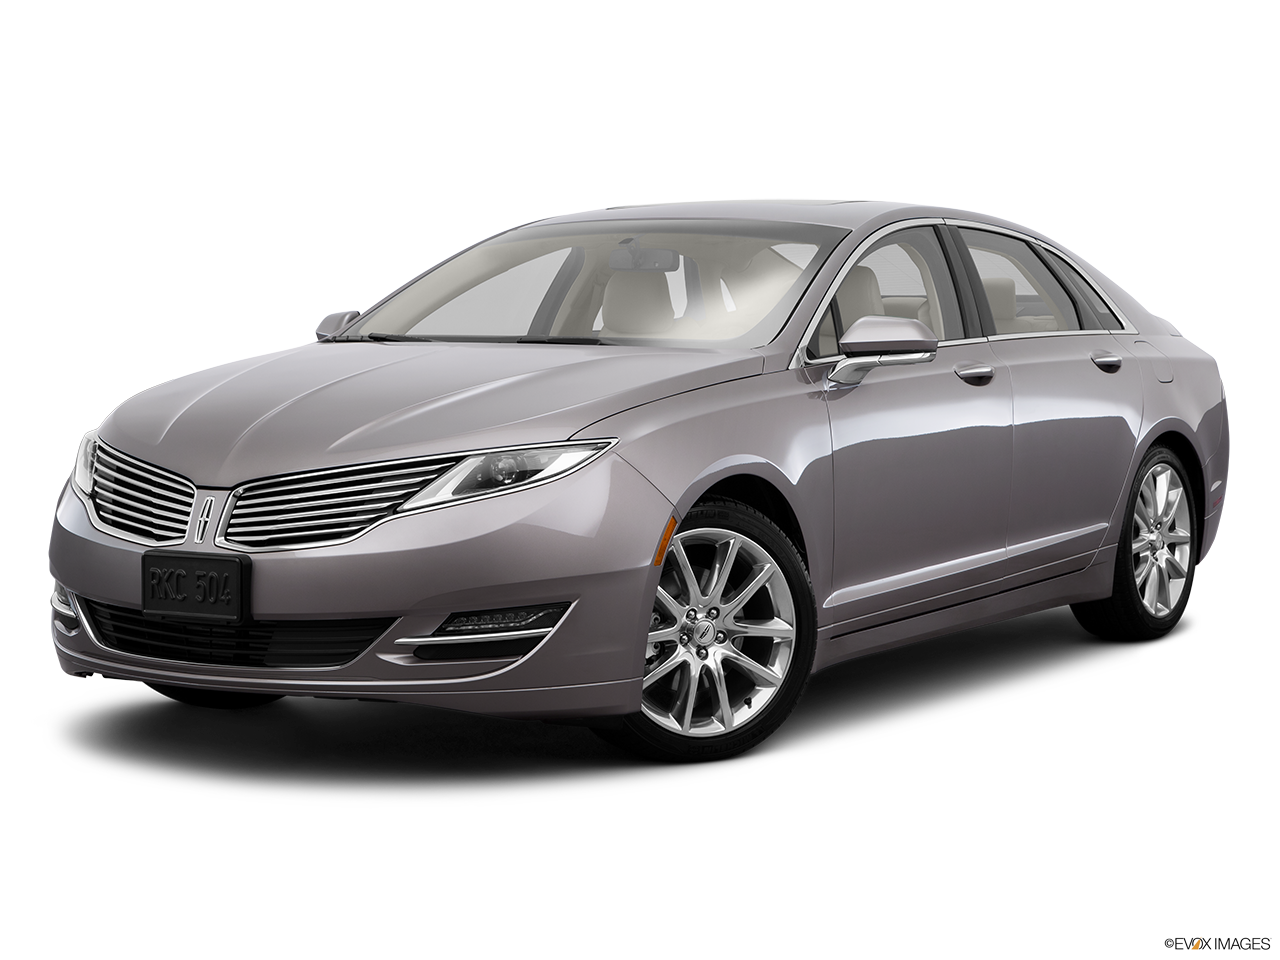 2015 lincoln mkz clipart jpg free download Download Lincoln Mkz Clipart HQ PNG Image | FreePNGImg jpg free download